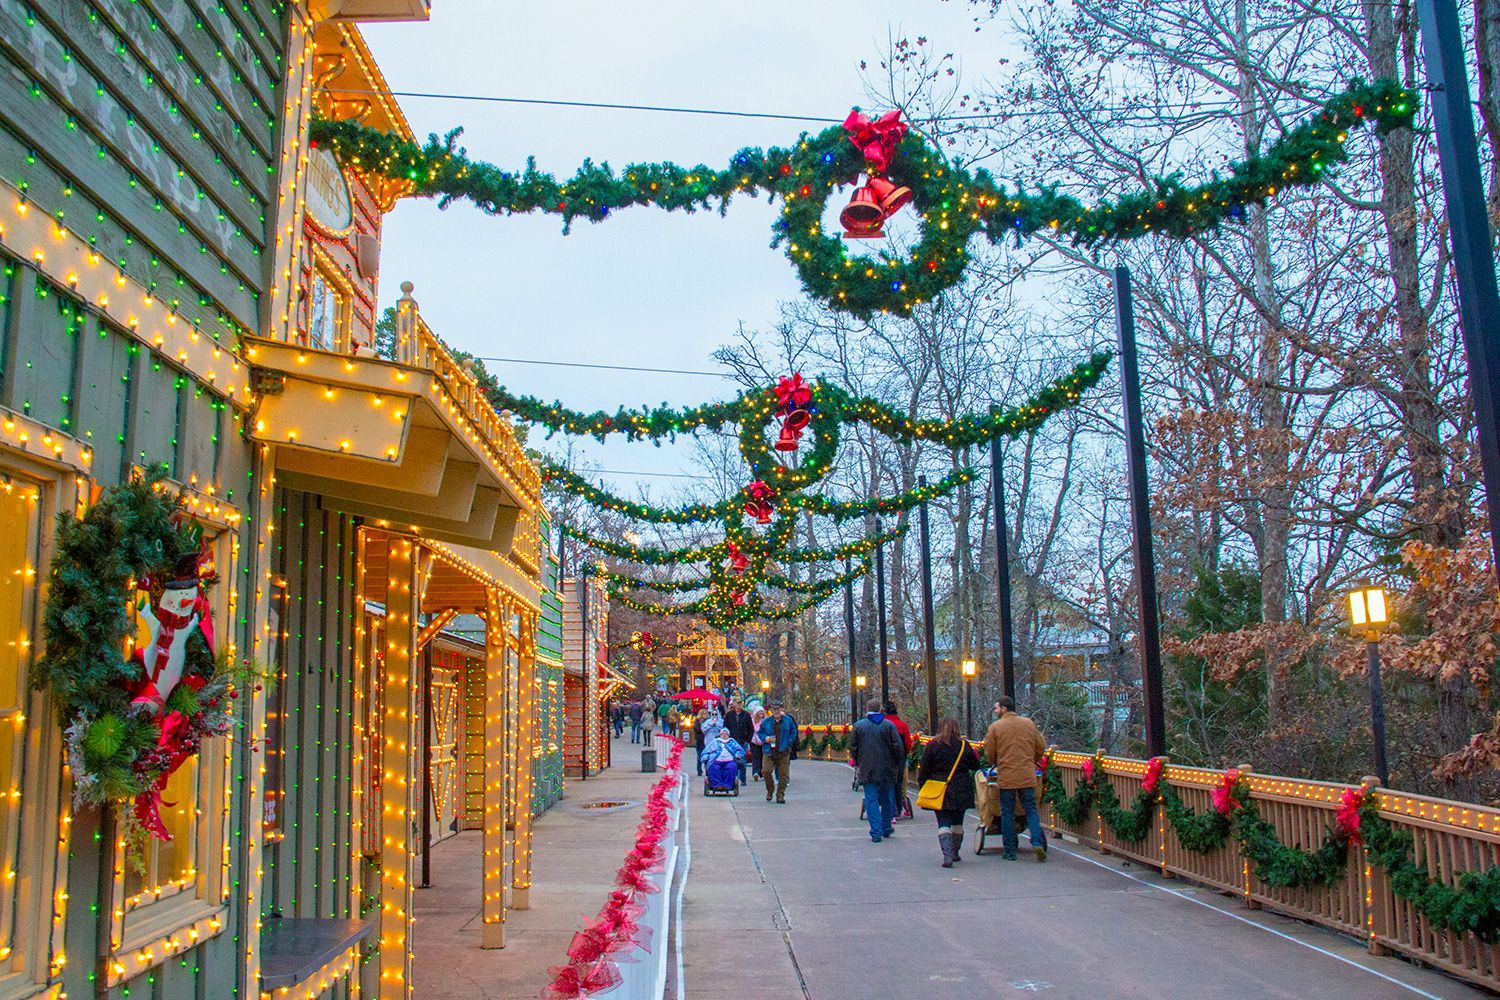 Branson Mo Attractions Christmas Day 2020 A full list of Christmas tourist attractions, part of an Ozark